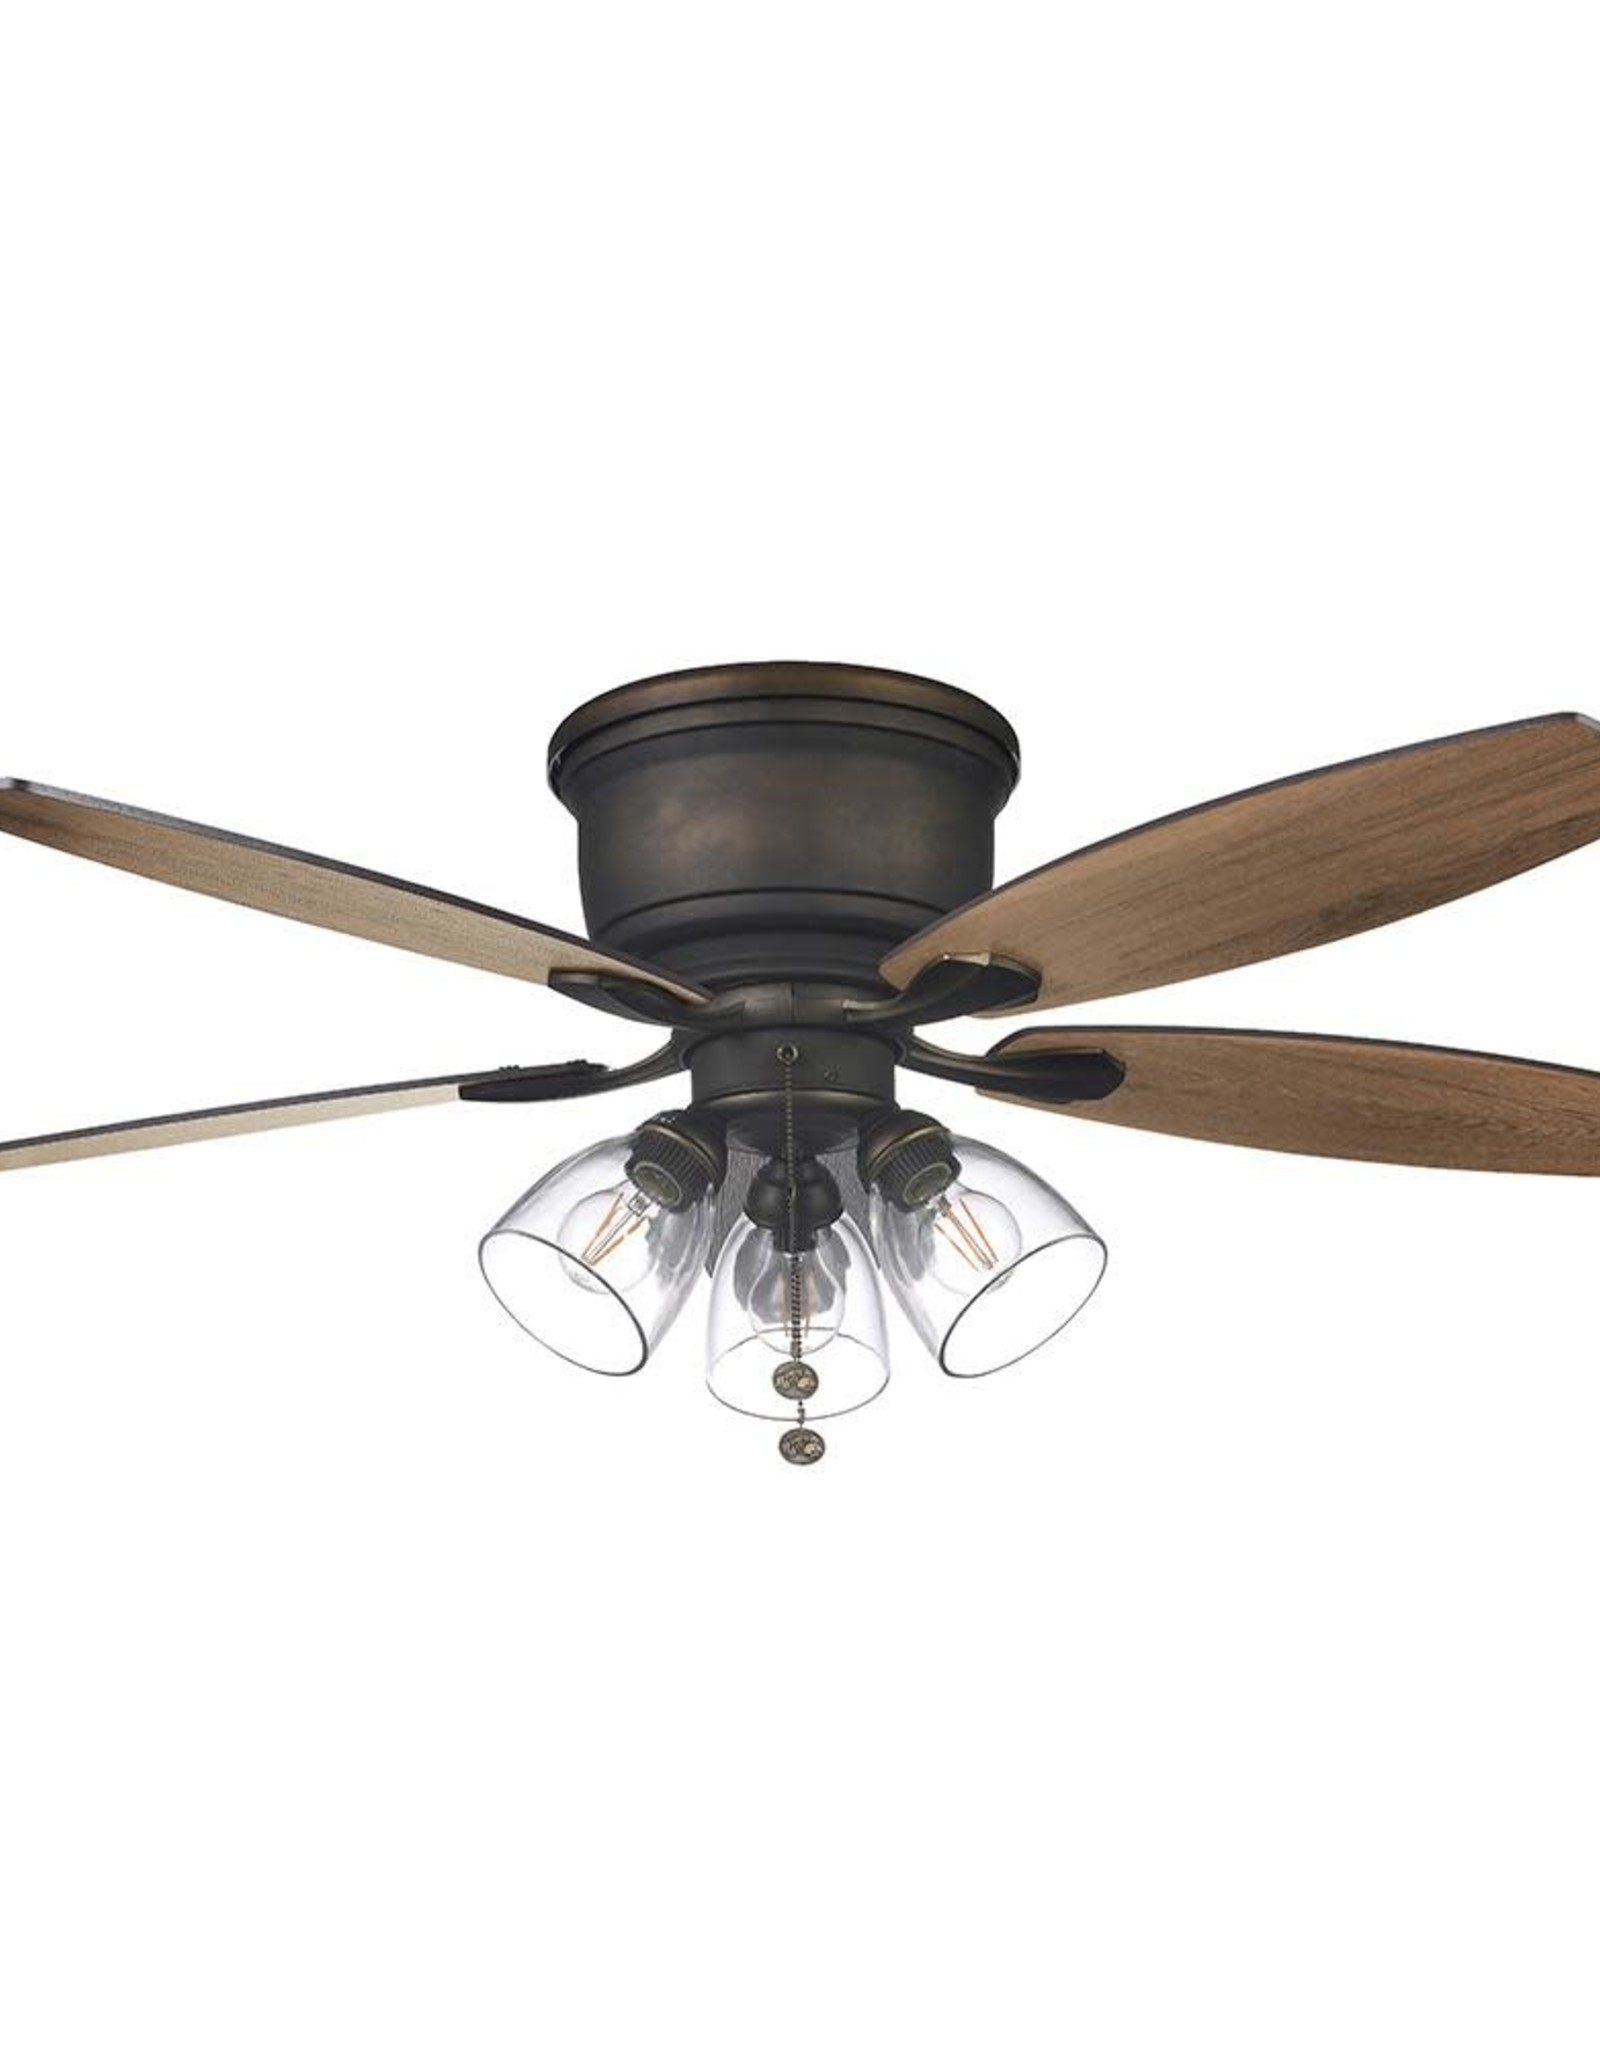 Hampton Bay Stoneridge 52 in. Bronze Hugger LED Ceiling Fan with Light Kit